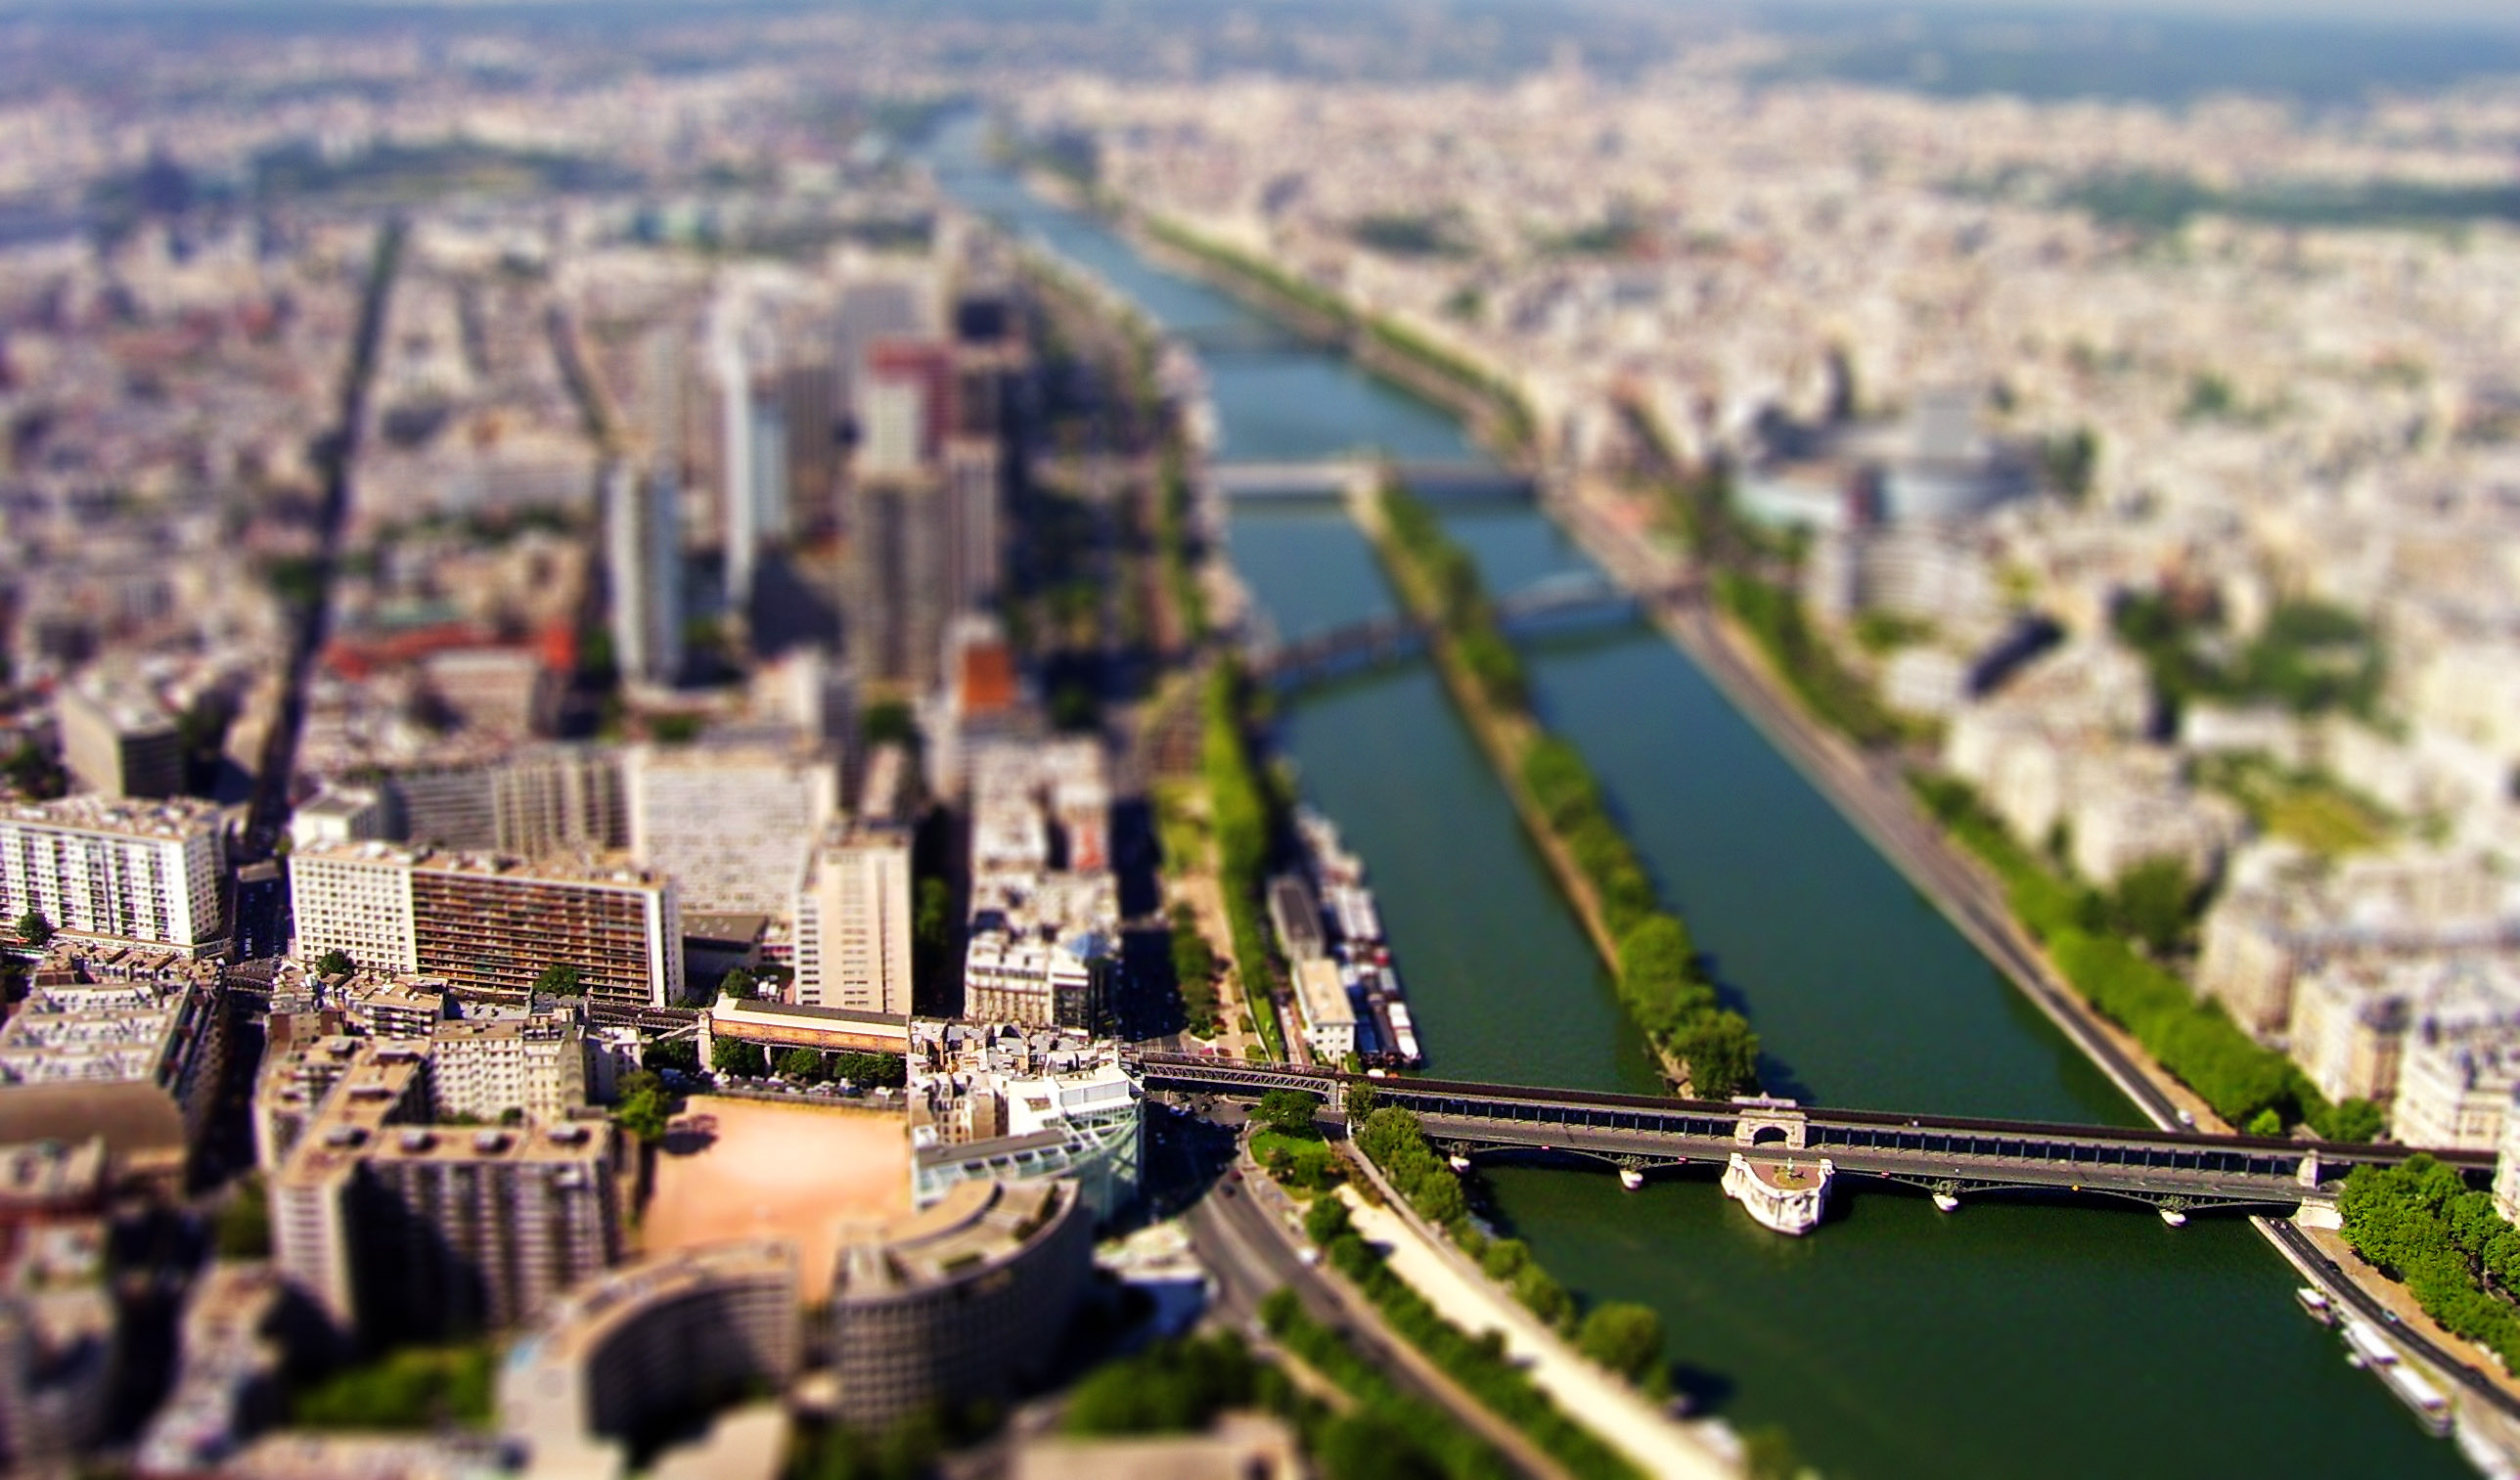 tilt shift miniature effect tutorial